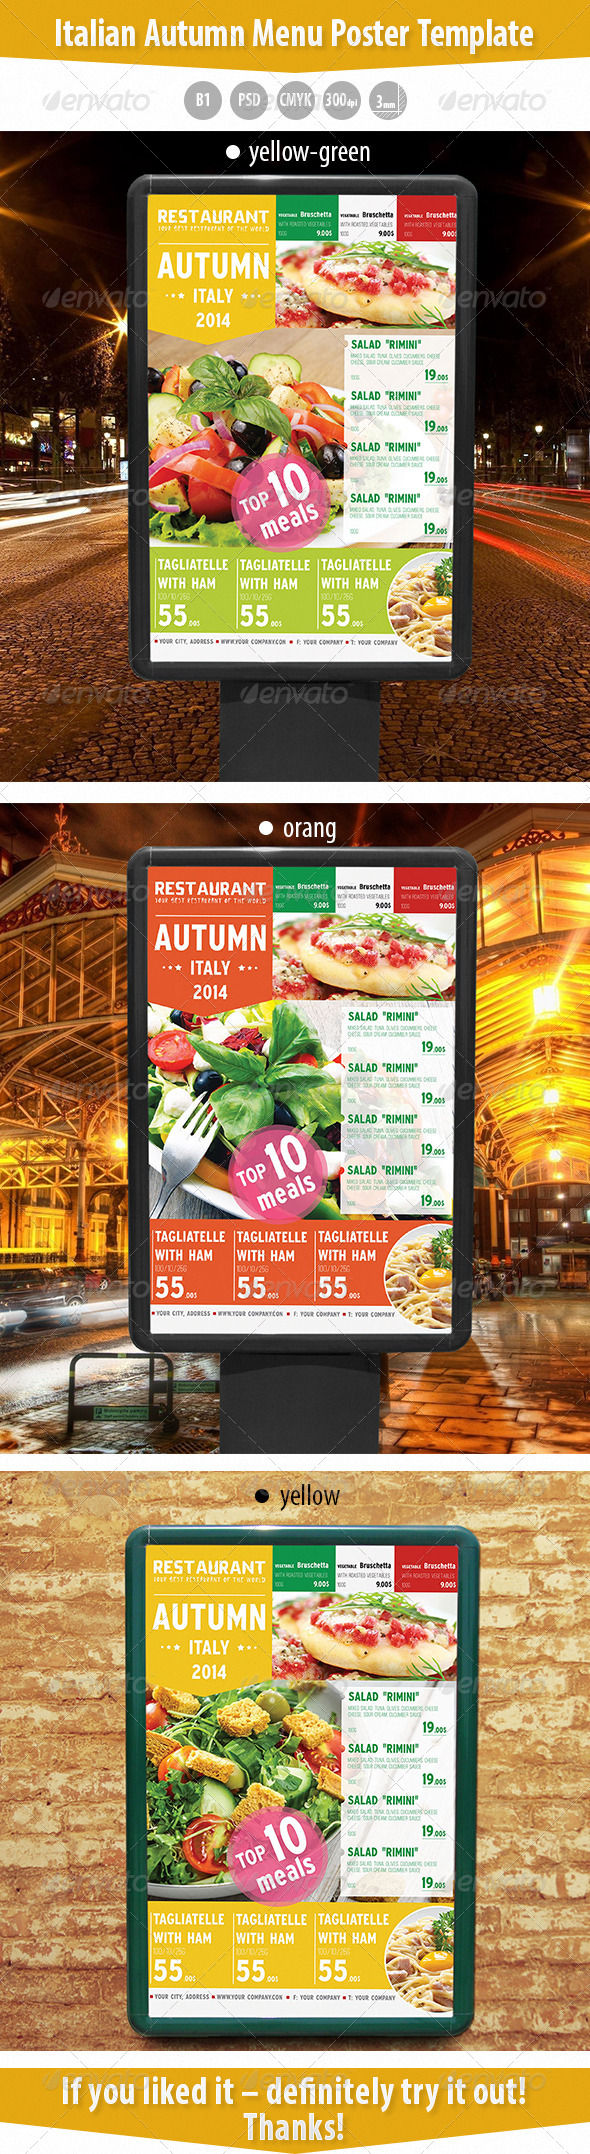 italian autumn menu poster template by kreatorr graphicriver